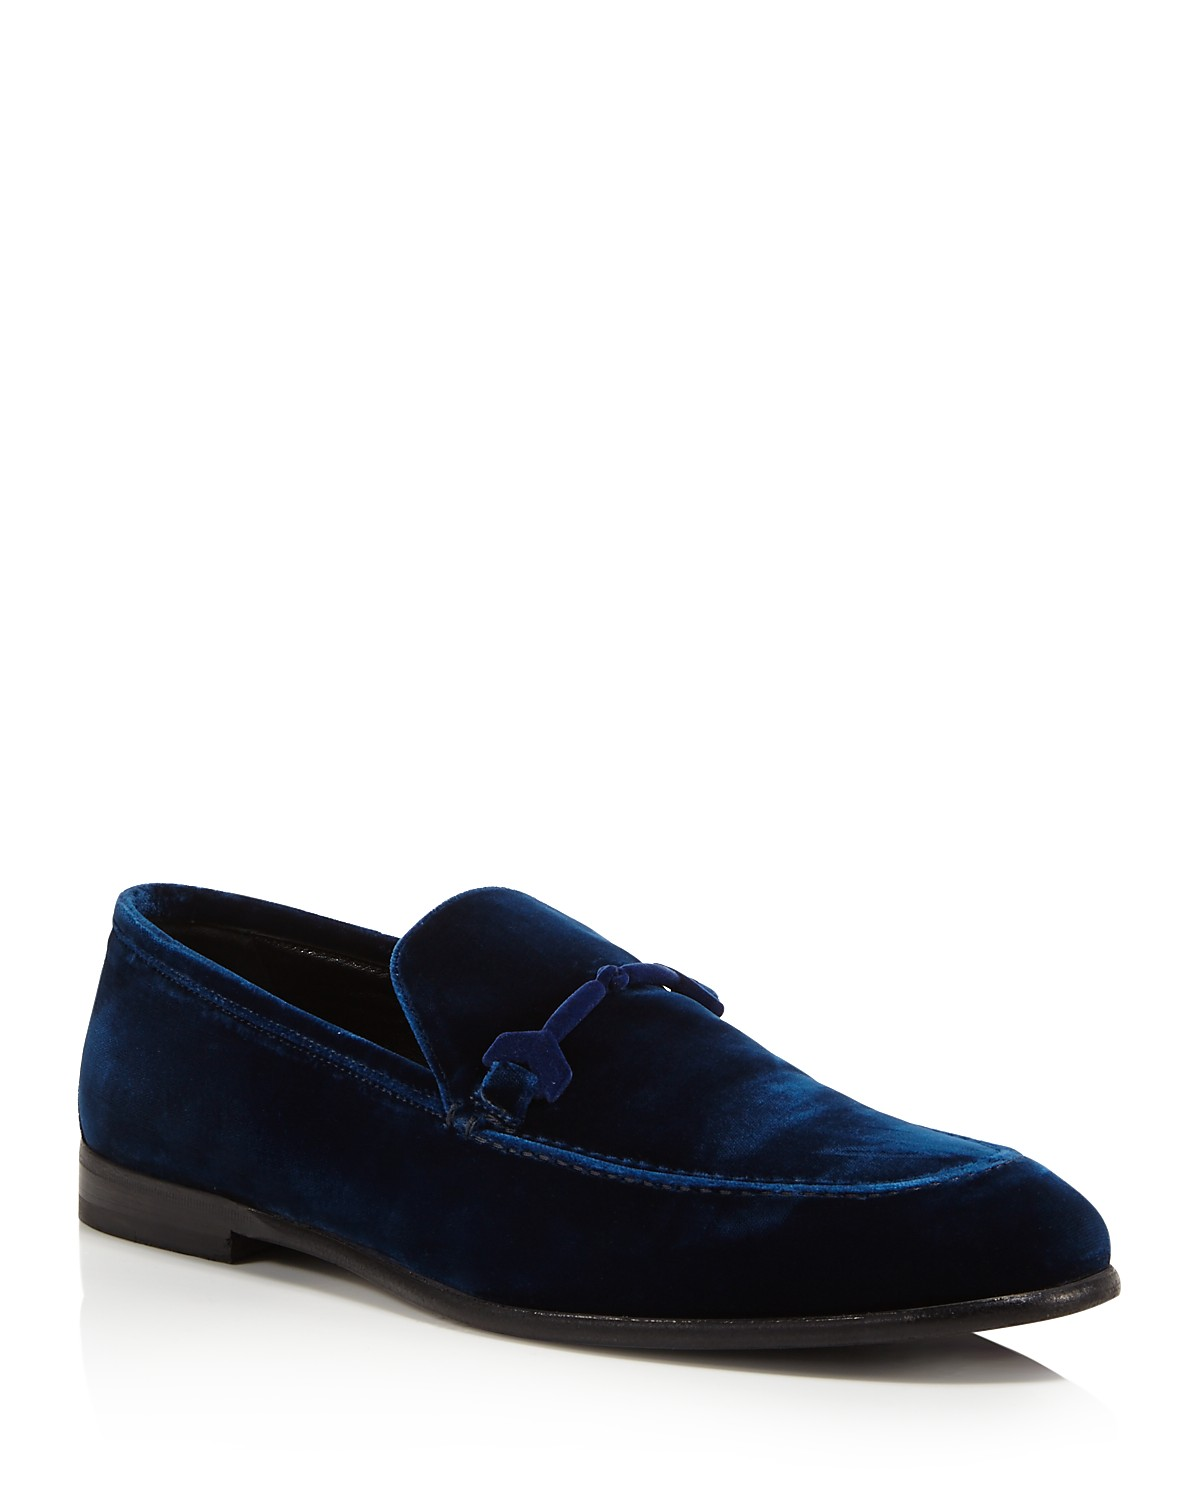 Jimmy choo Designer Shoes, Marti Navy Velvet Loafer